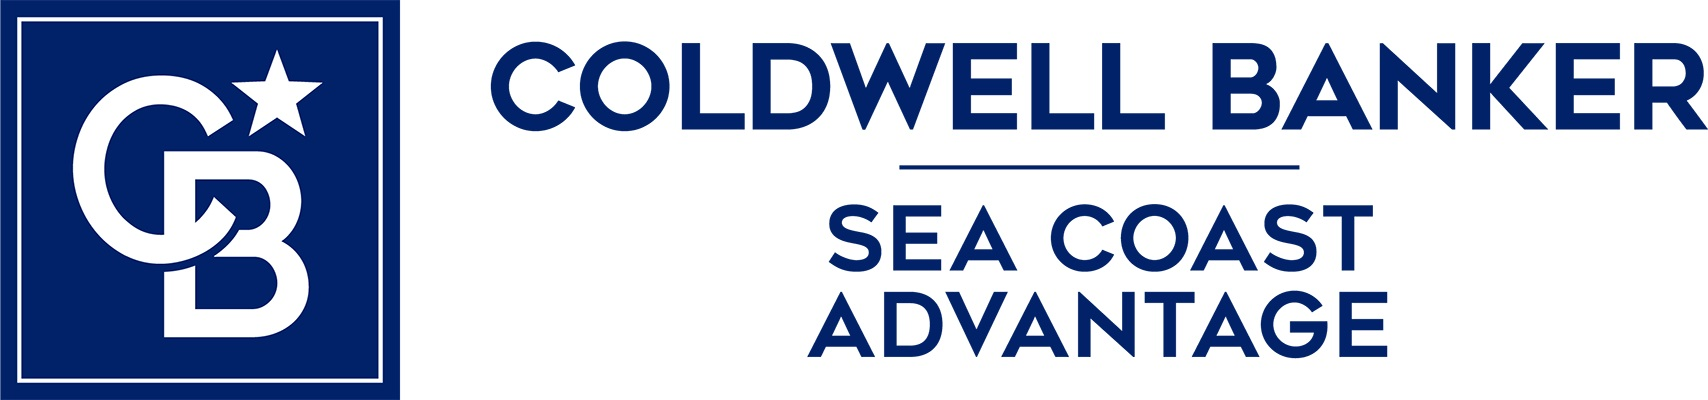 Chloe Laffey - Coldwell Banker Sea Coast Advantage Realty